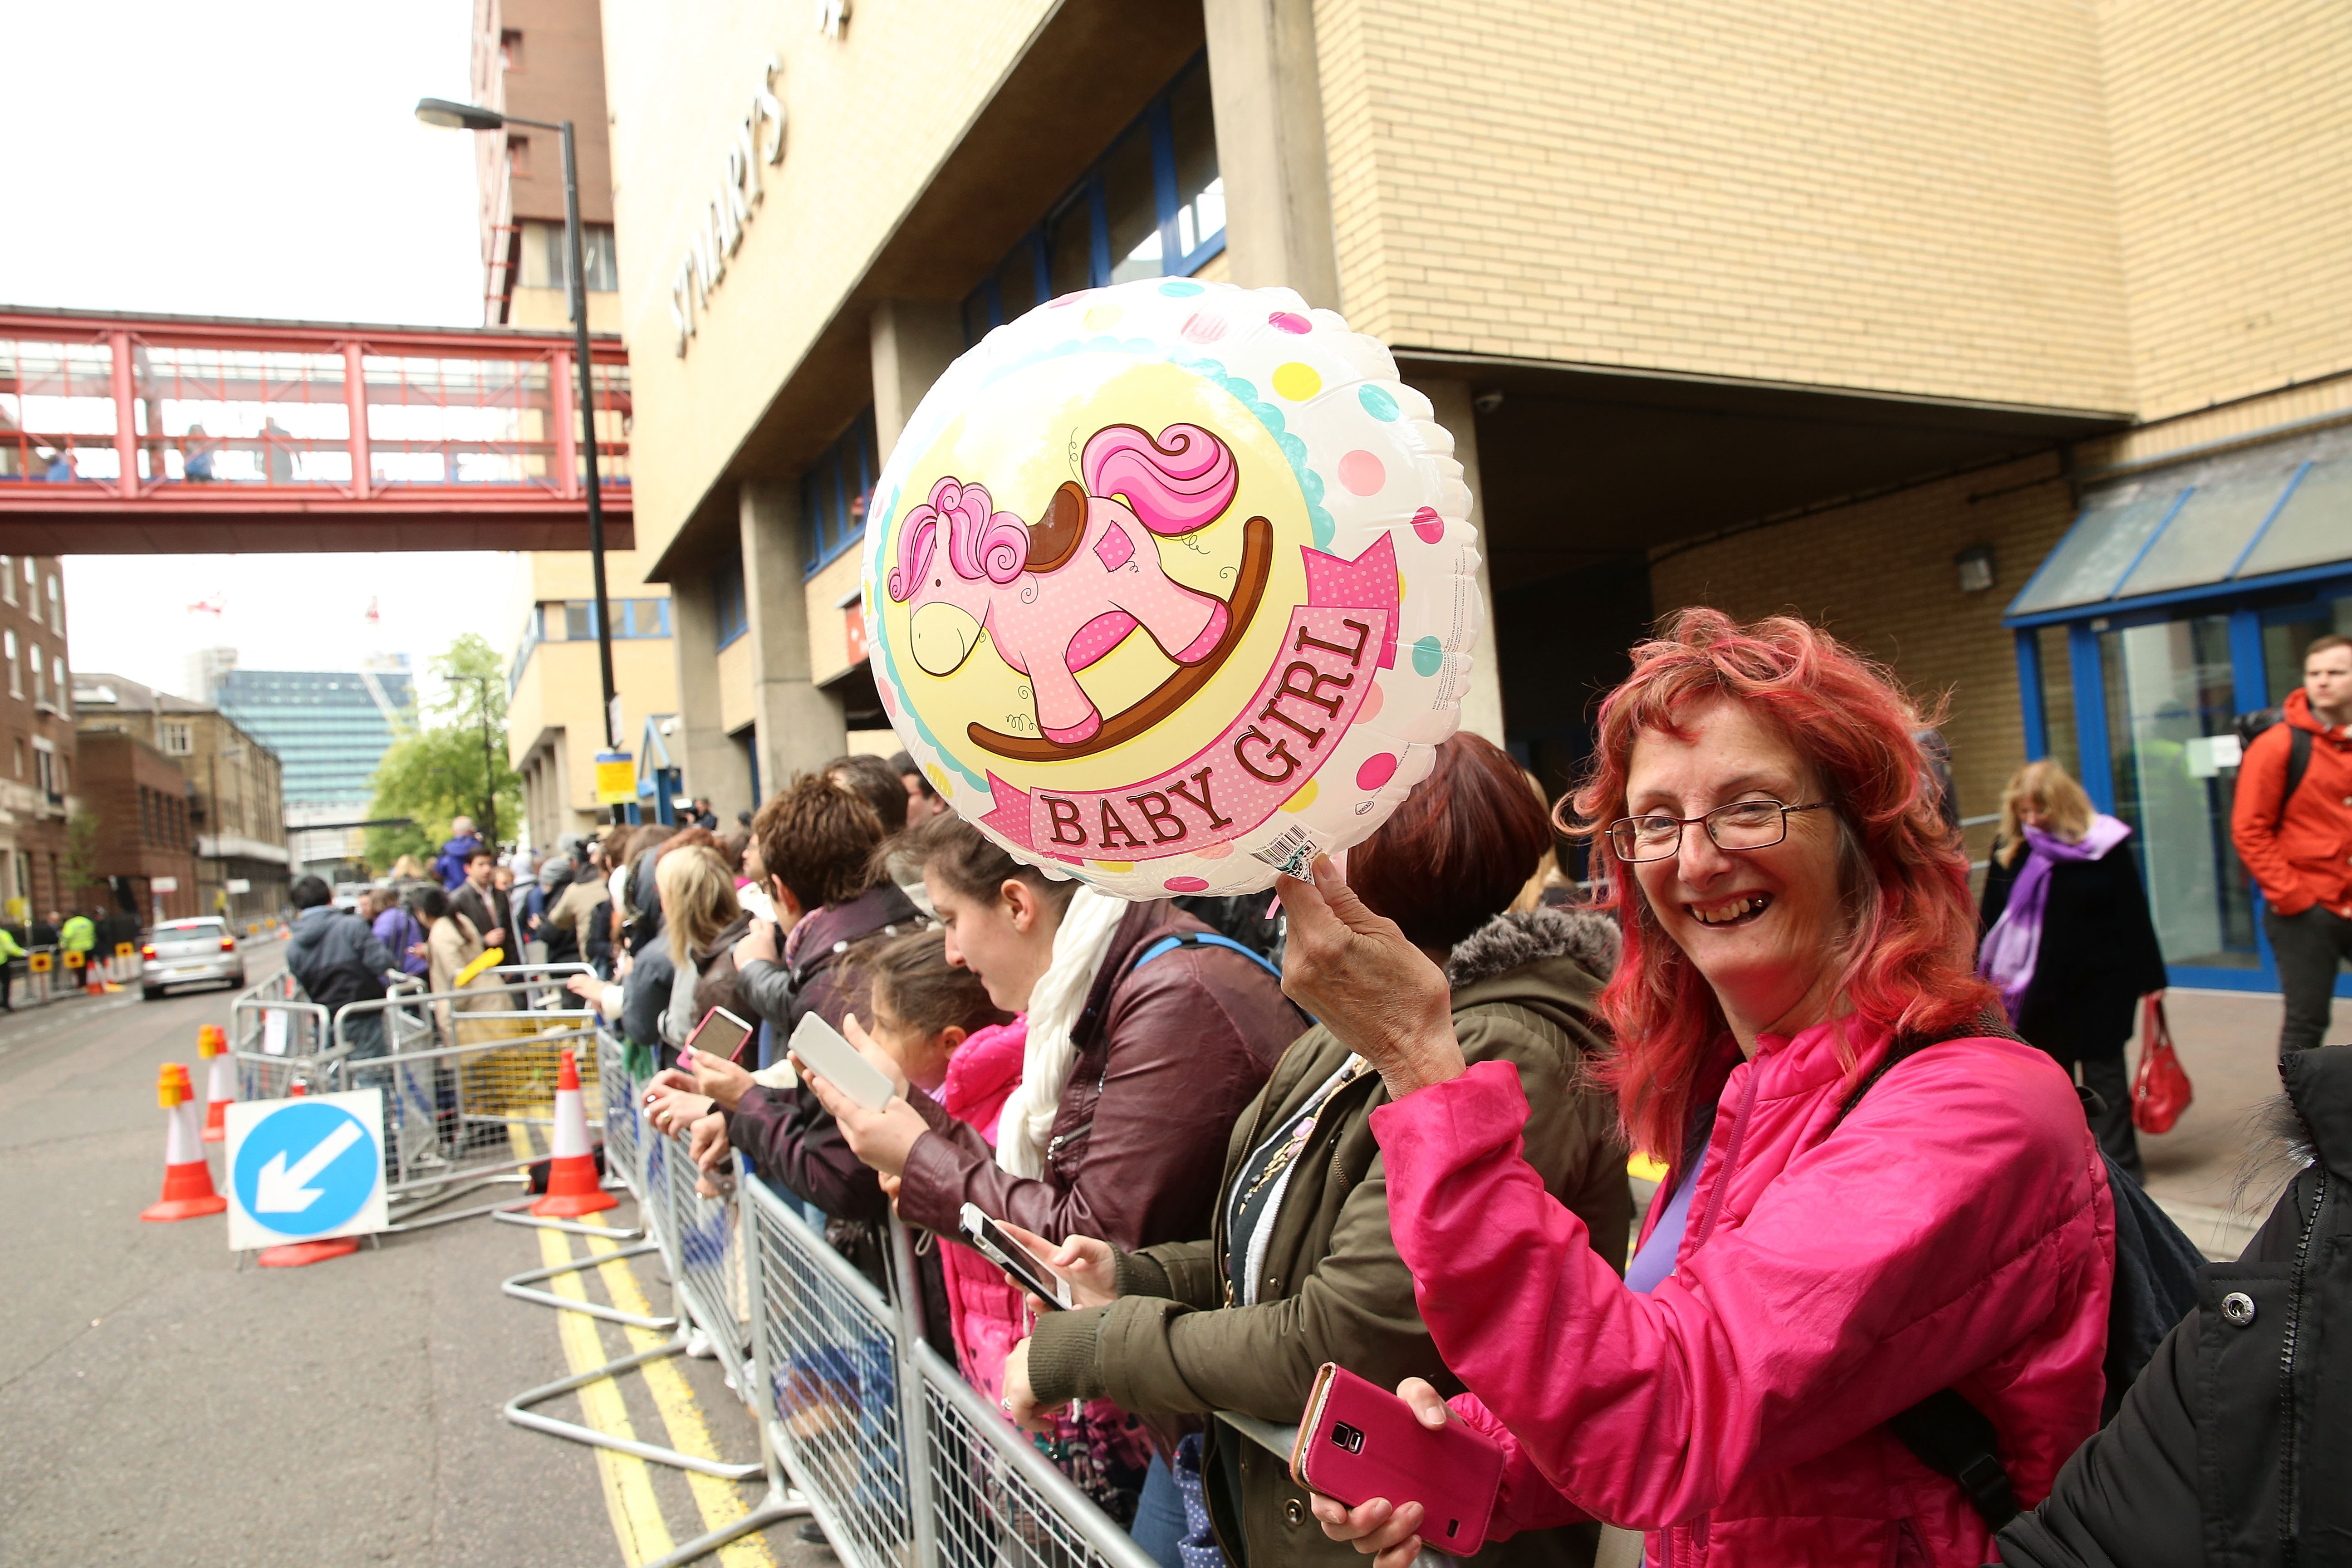 Royal fans celebrate the announcement that Catherine, duchess of Cambridge, has given birth to a baby girl, outside the Lindo Wing at St Mary's Hospital on May 2 in London.